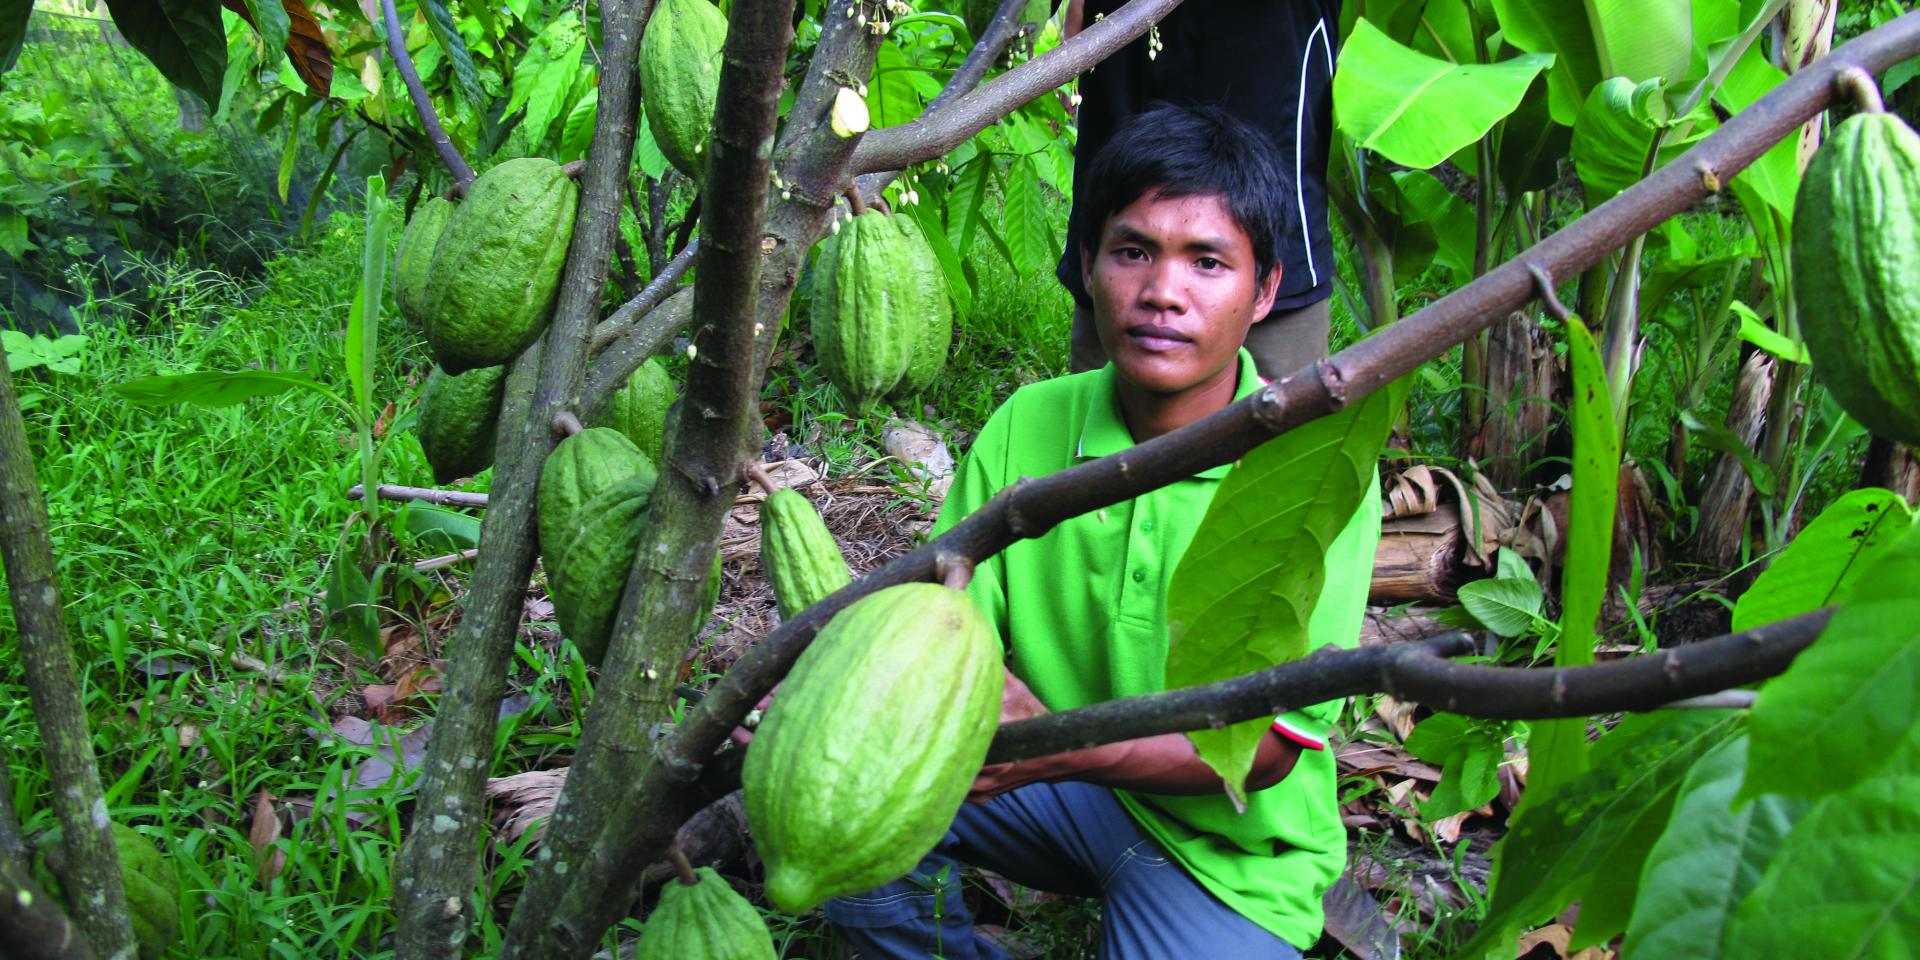 Village cocoa doctors like Muis Samsuddin are helping to transform cocoa farming in Sulawesi. Photo: ICRAF.